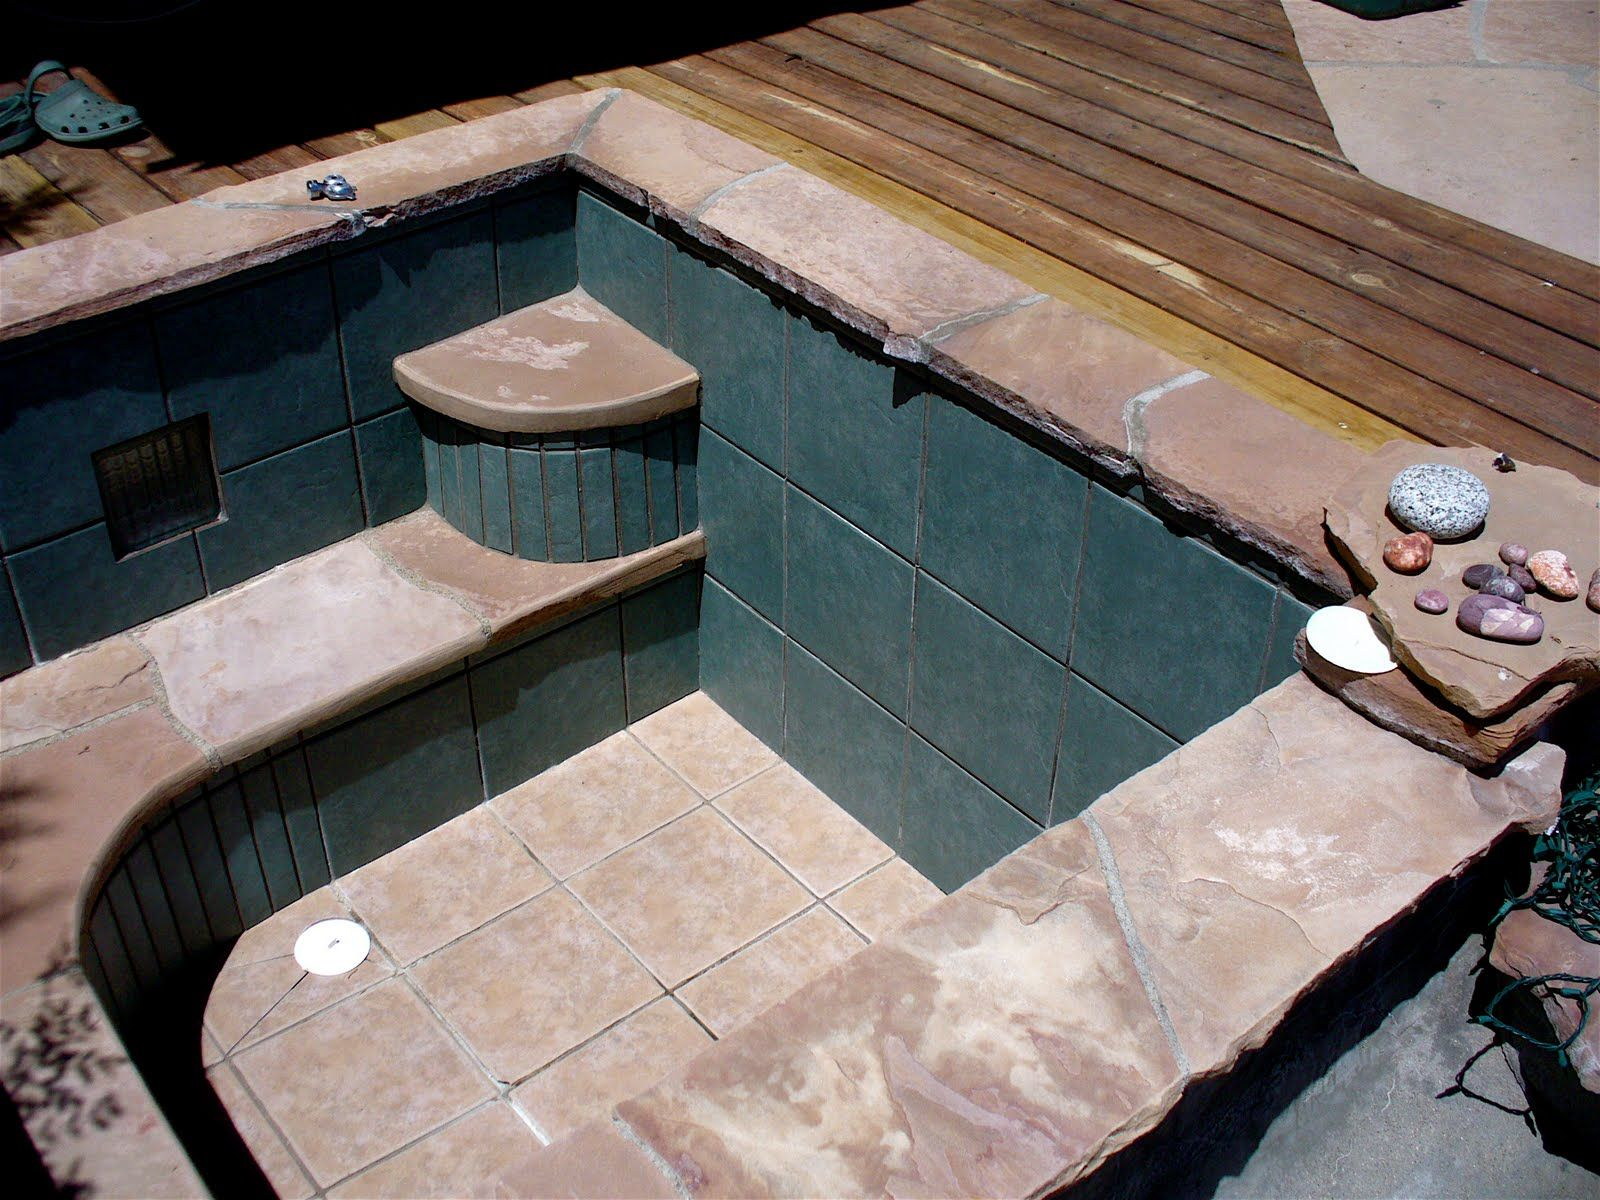 A Concrete And Tile Pool With Images Pool Tile Diy Stone Tile